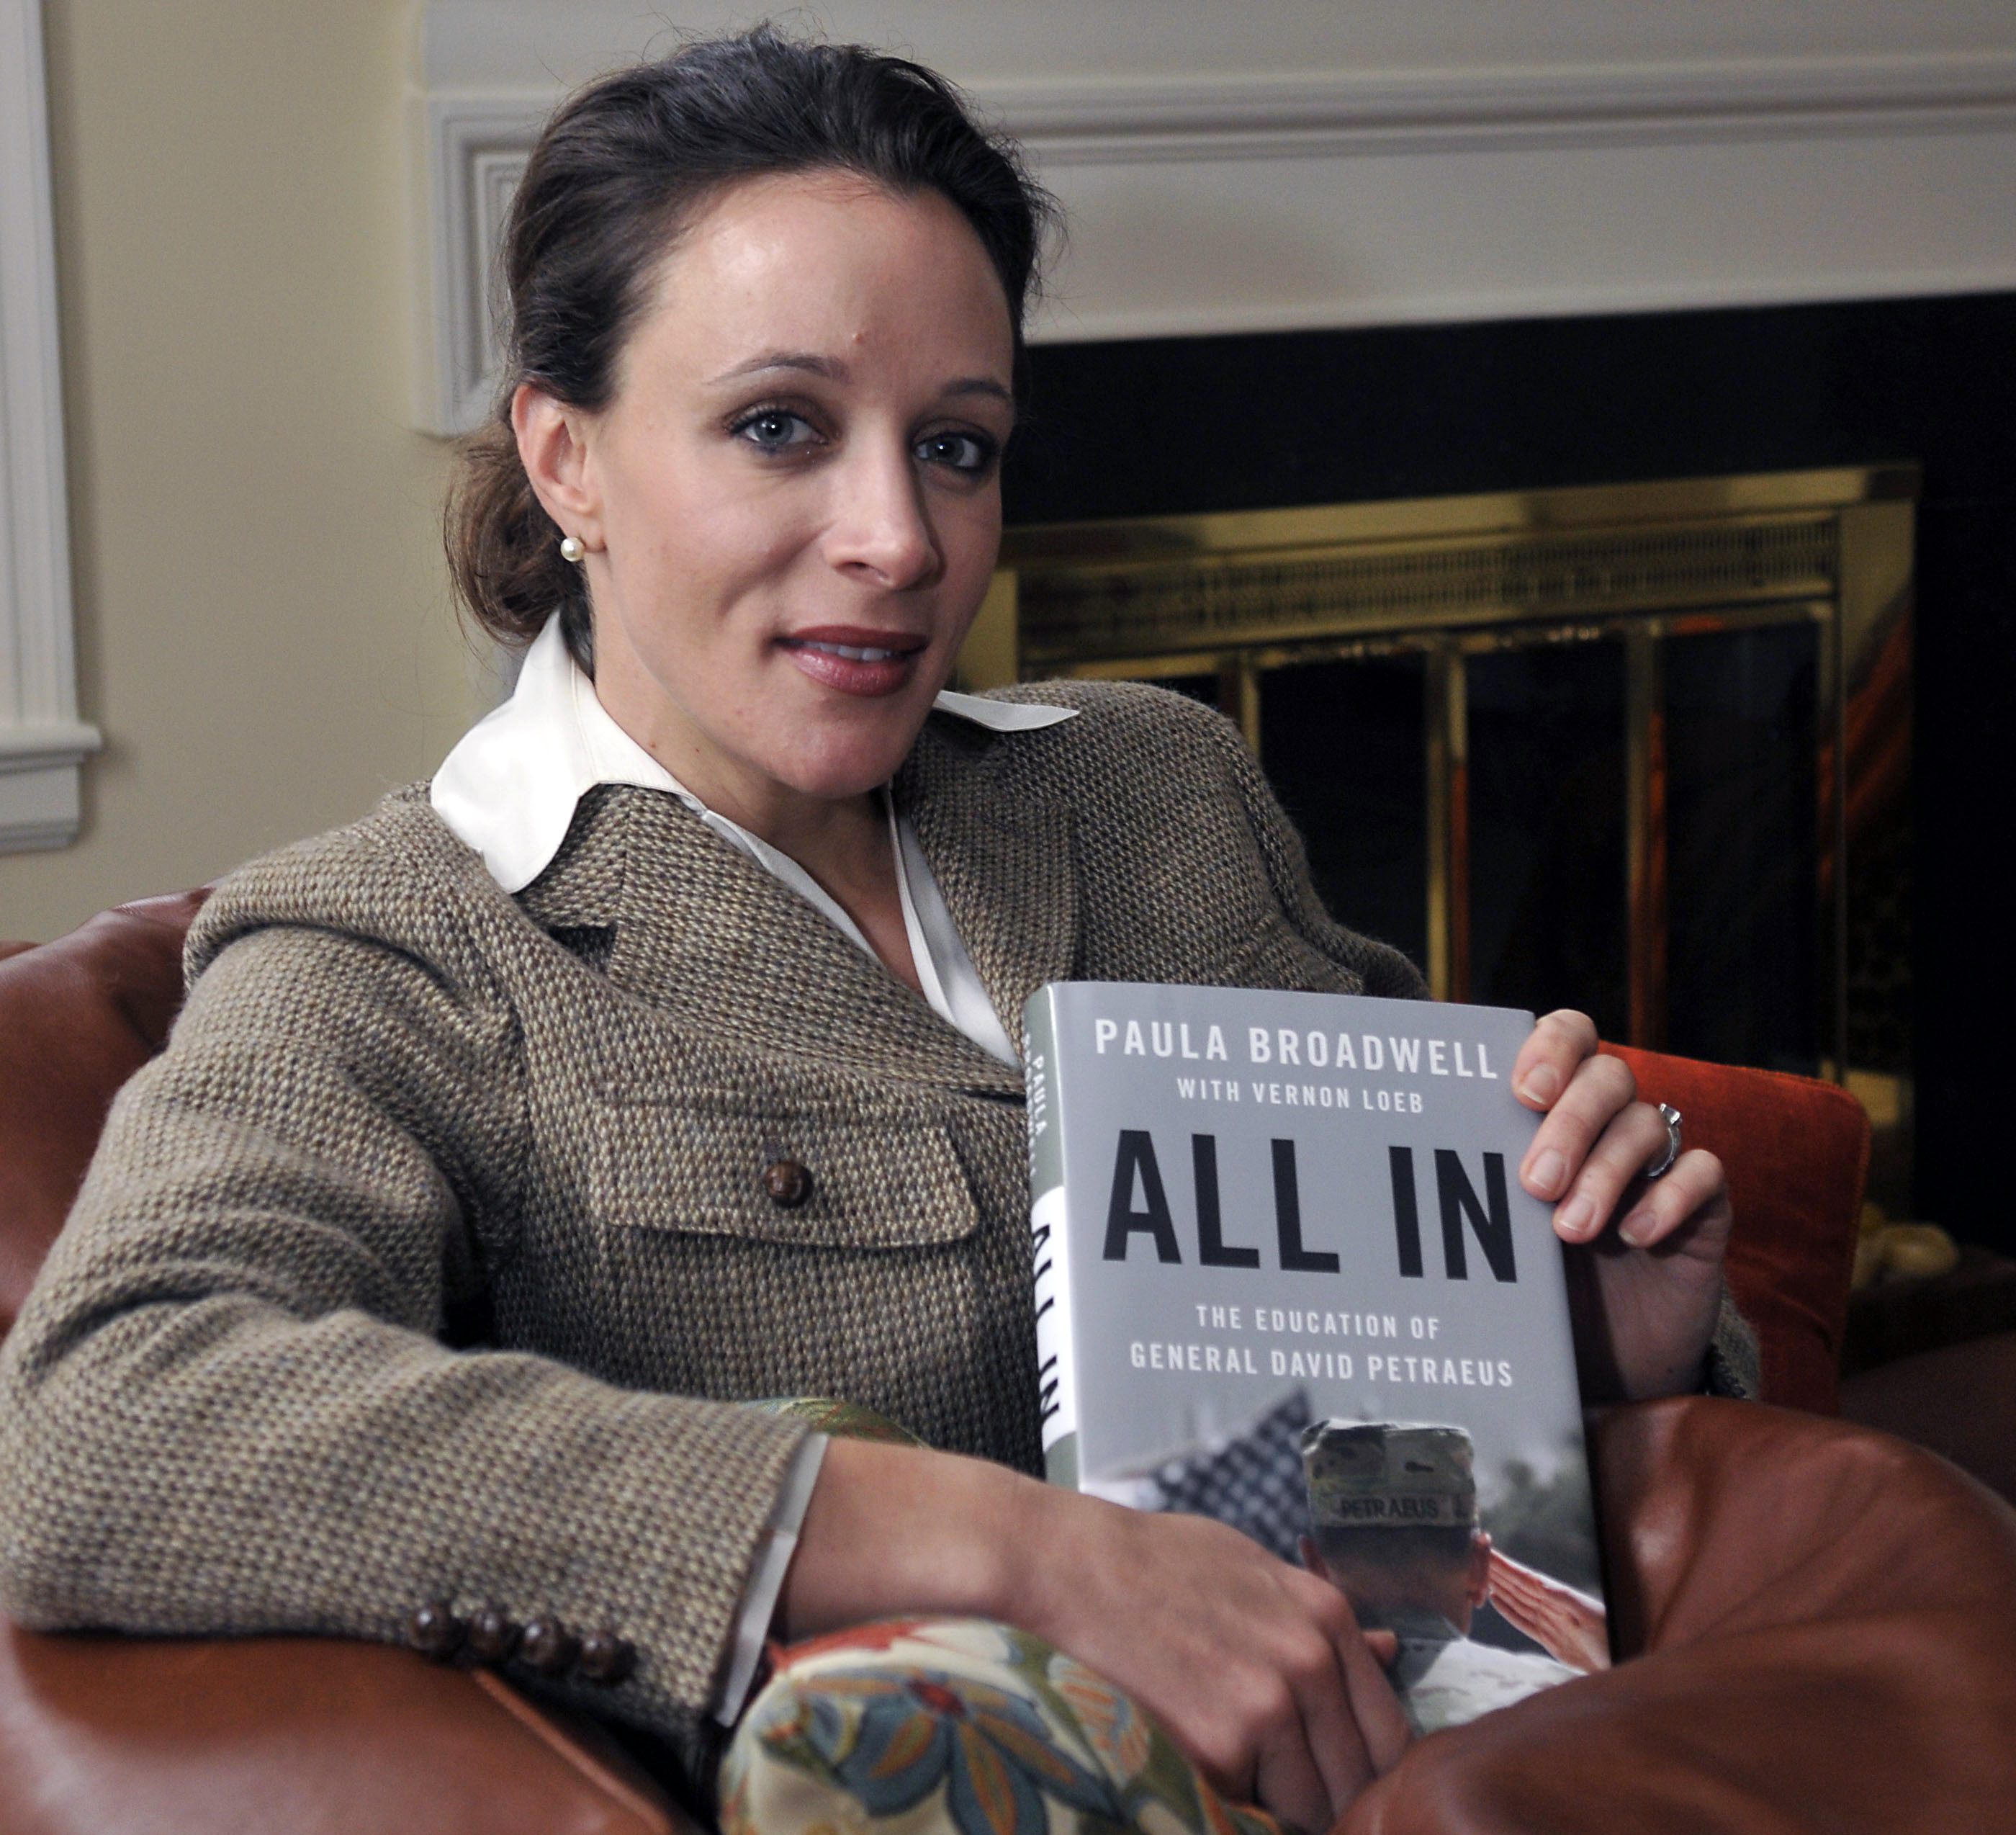 """In this Jan. 15, 2012 photo, Paula Broadwell, author of the David Petraeus biography """"All In,"""" poses for photos in Charlotte, N.C. Petraeus, the retired four-star general renowned for taking charge of the military campaigns in Iraq and then Afghanistan, abruptly resigned Friday, Nov. 9, 2012 as director of the CIA, admitting to an extramarital affair. Petraeus carried on the affair with Broadwell, according to several U.S. officials with knowledge of the situation. (AP Photo/The Charlotte Observer, T. Ortega Gaines) LOCAL TV OUT (WSOC, WBTV, WCNC, WCCB); LOCAL PRINT OUT (CHARLOTTE BUSINESS JOURNAL, CREATIVE LOAFLING, CHARLOTTE WEEKLY, MECHLENBURG TIMES, CHARLOTTE MAGAZINE, CHARLOTTE PARENTS) LOCAL RADIO OUT (WBT)"""